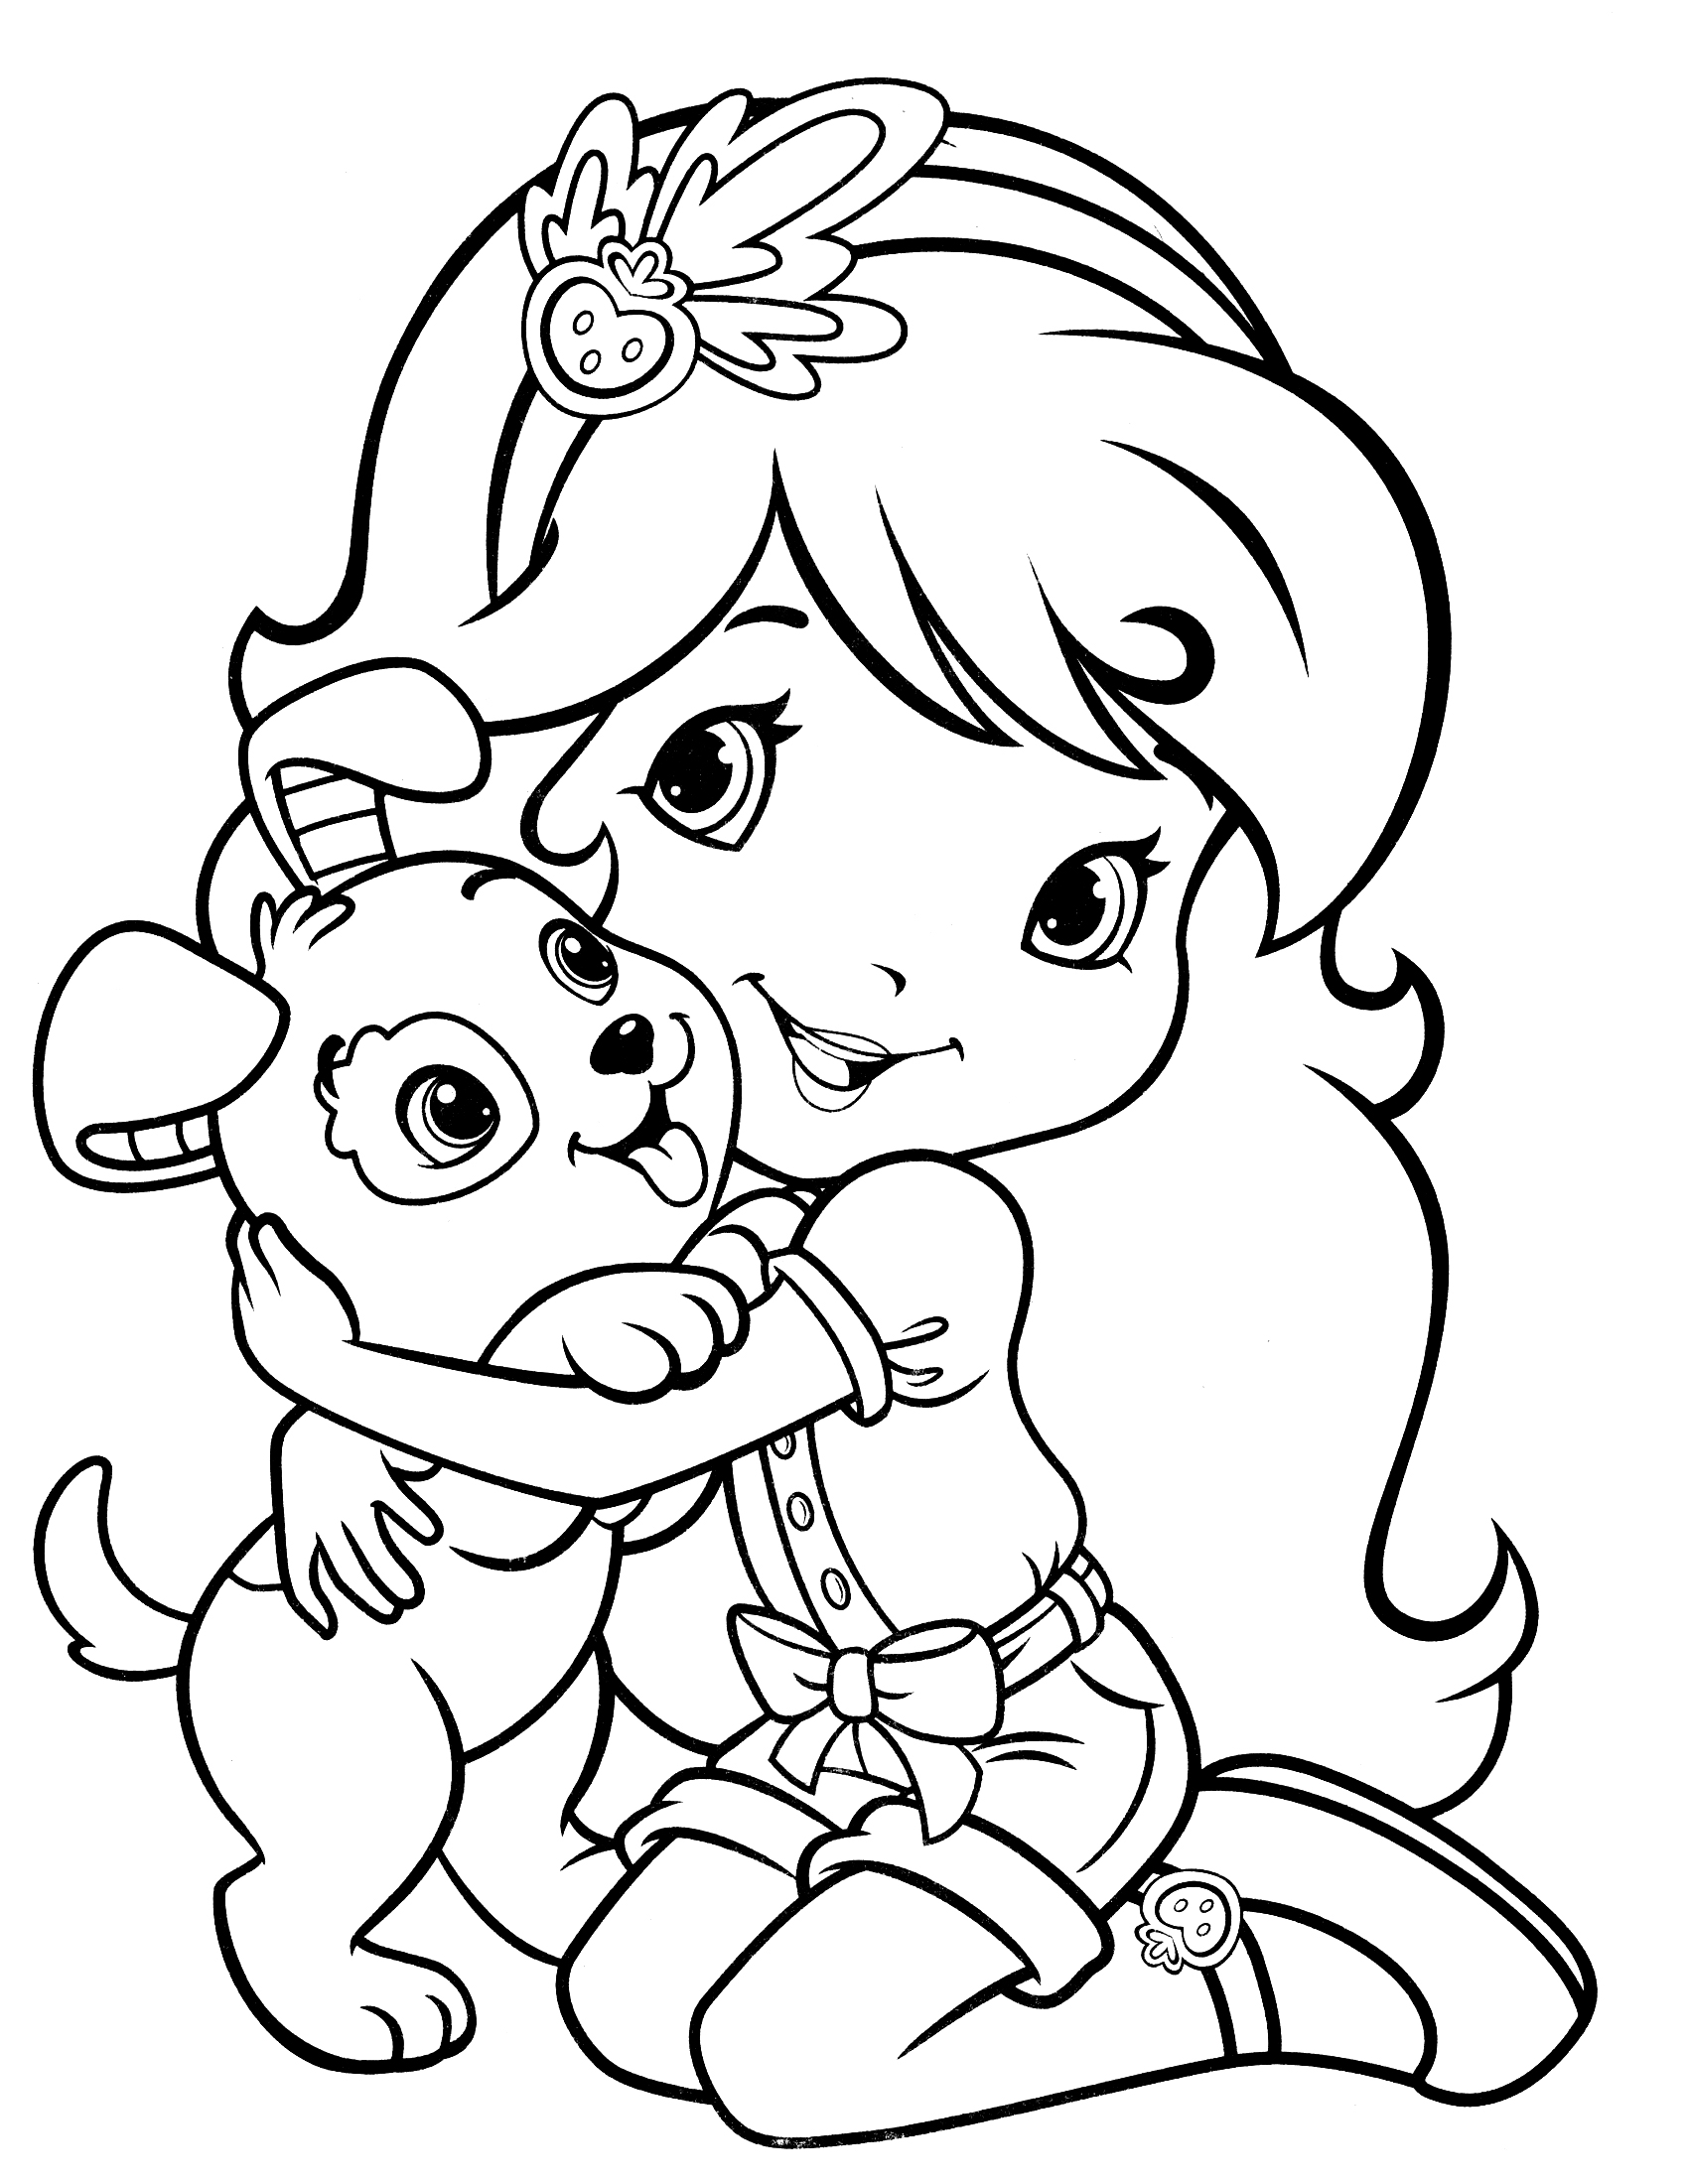 11 strawberry shortcake coloring page to print print for Strawberry shortcake coloring pages to print